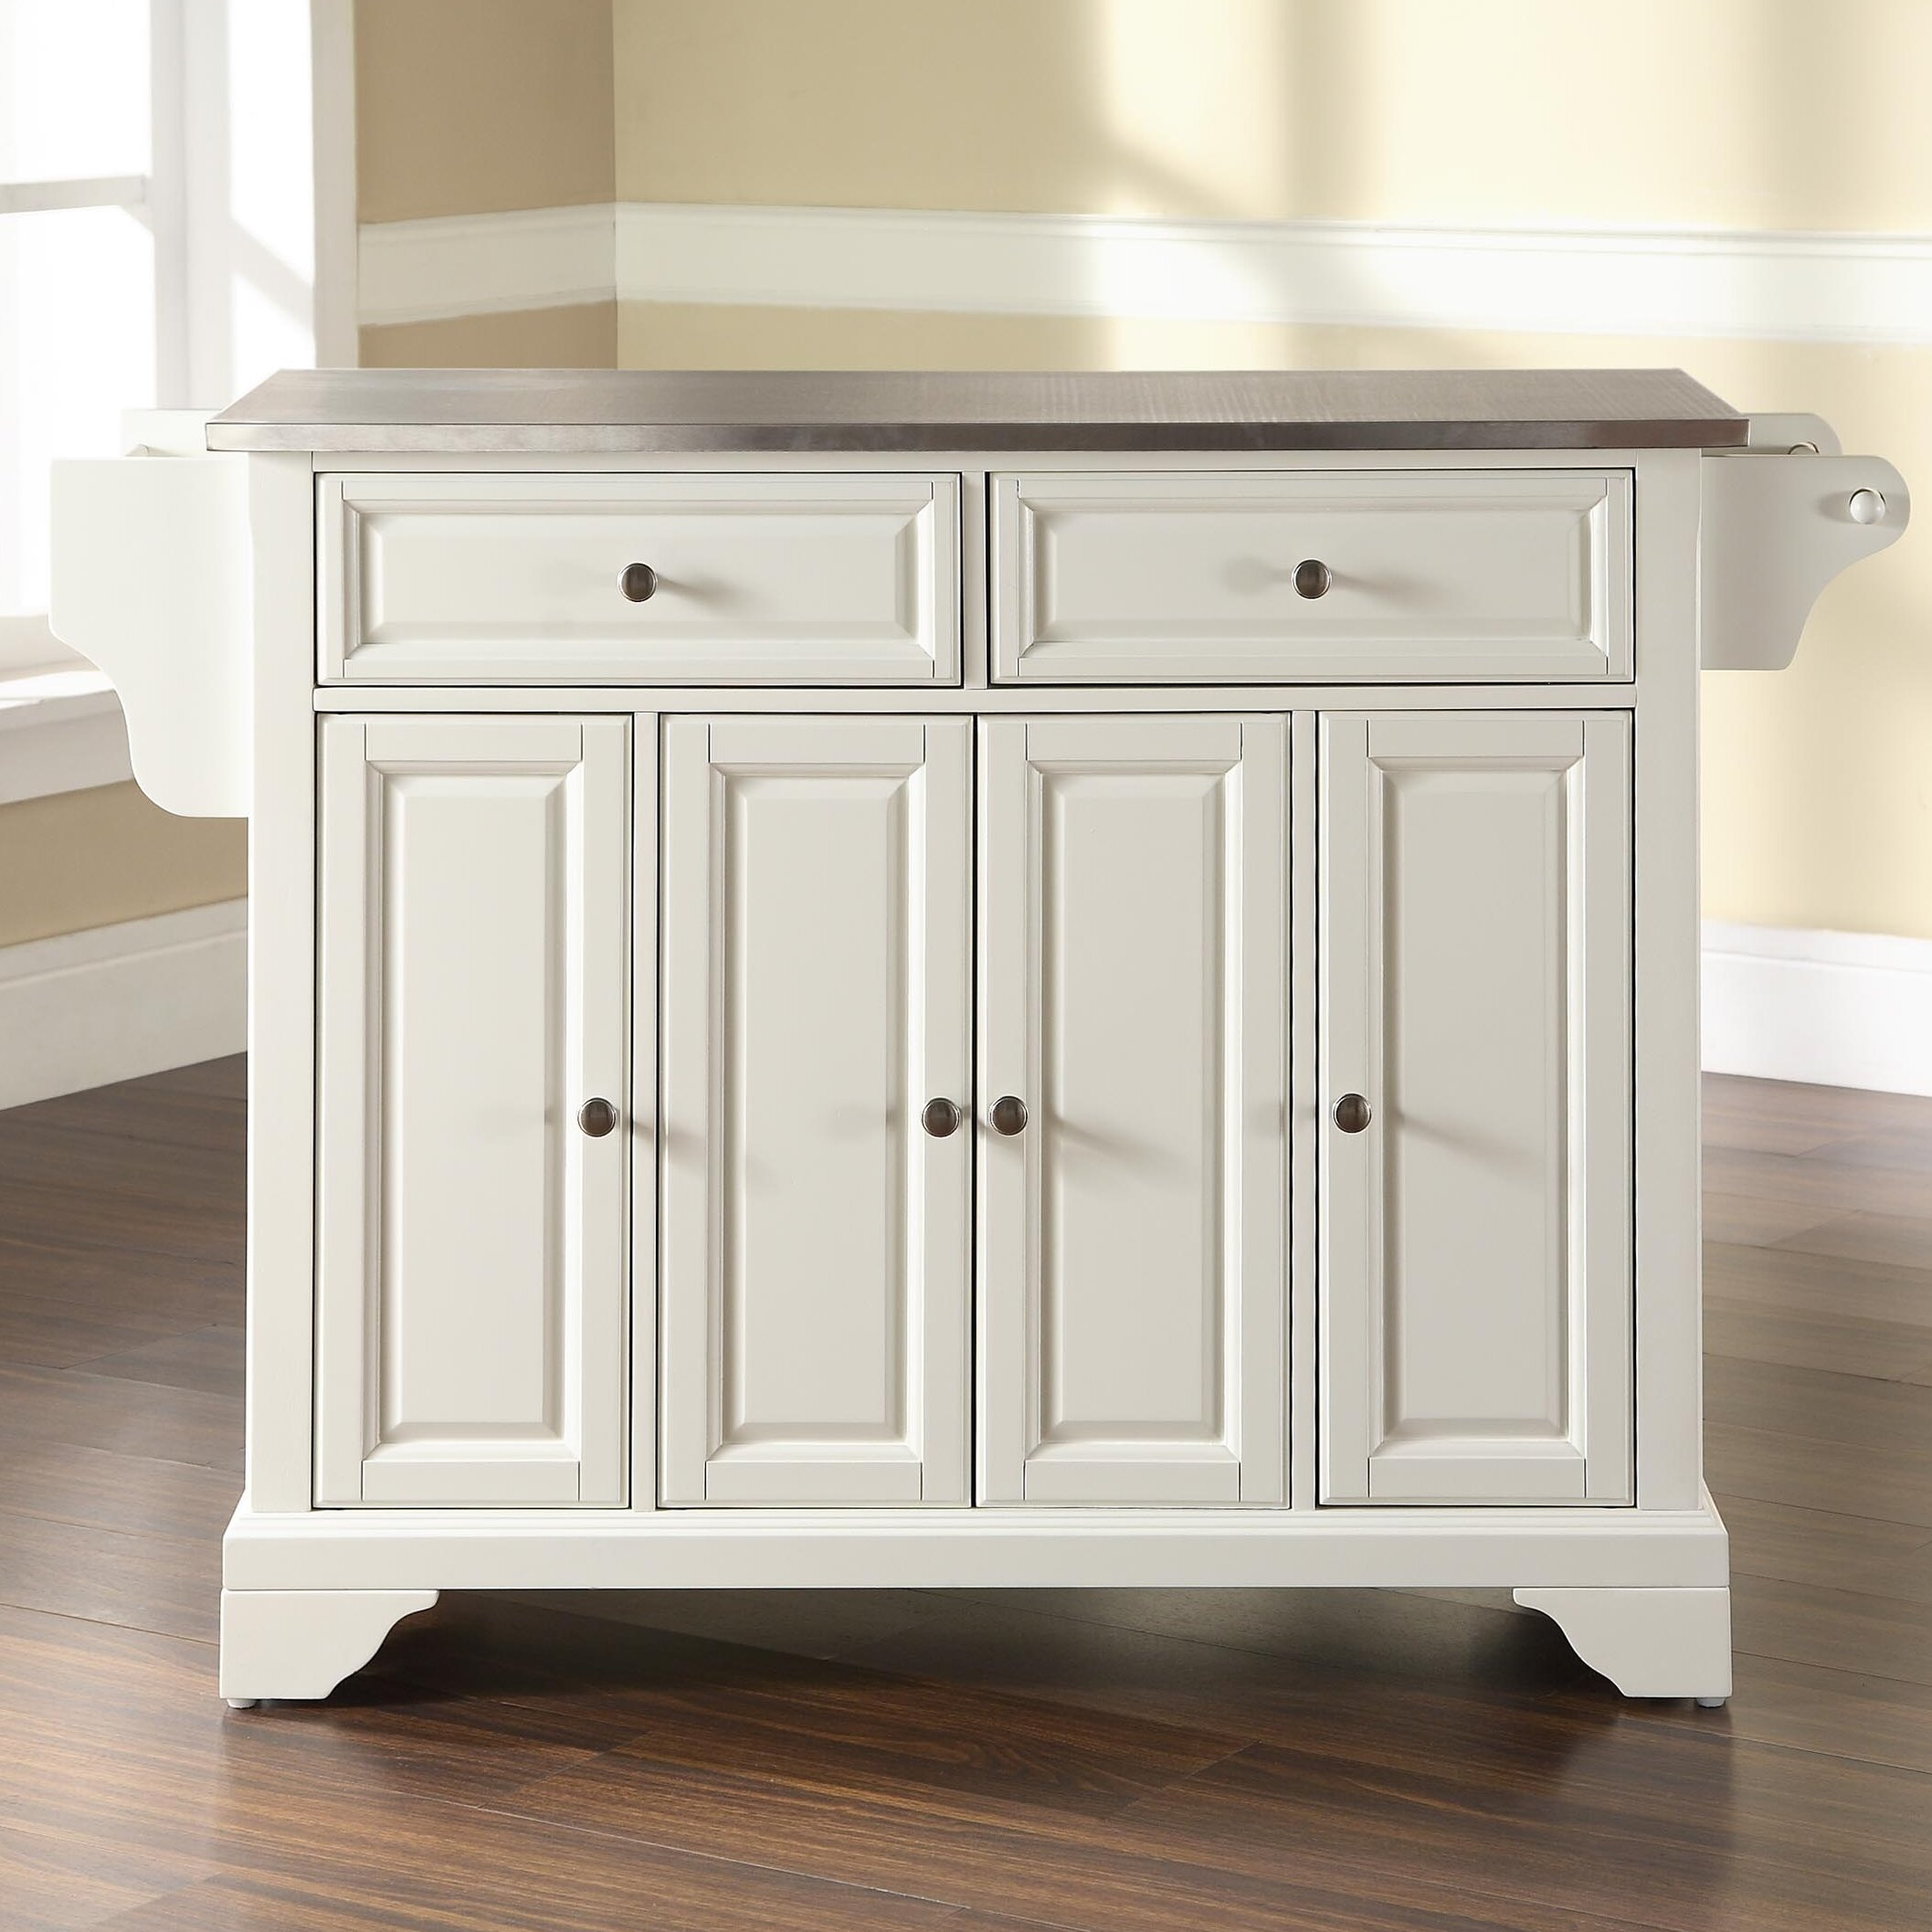 Darby Home Co Abbate Kitchen Island with Stainless Steel Top